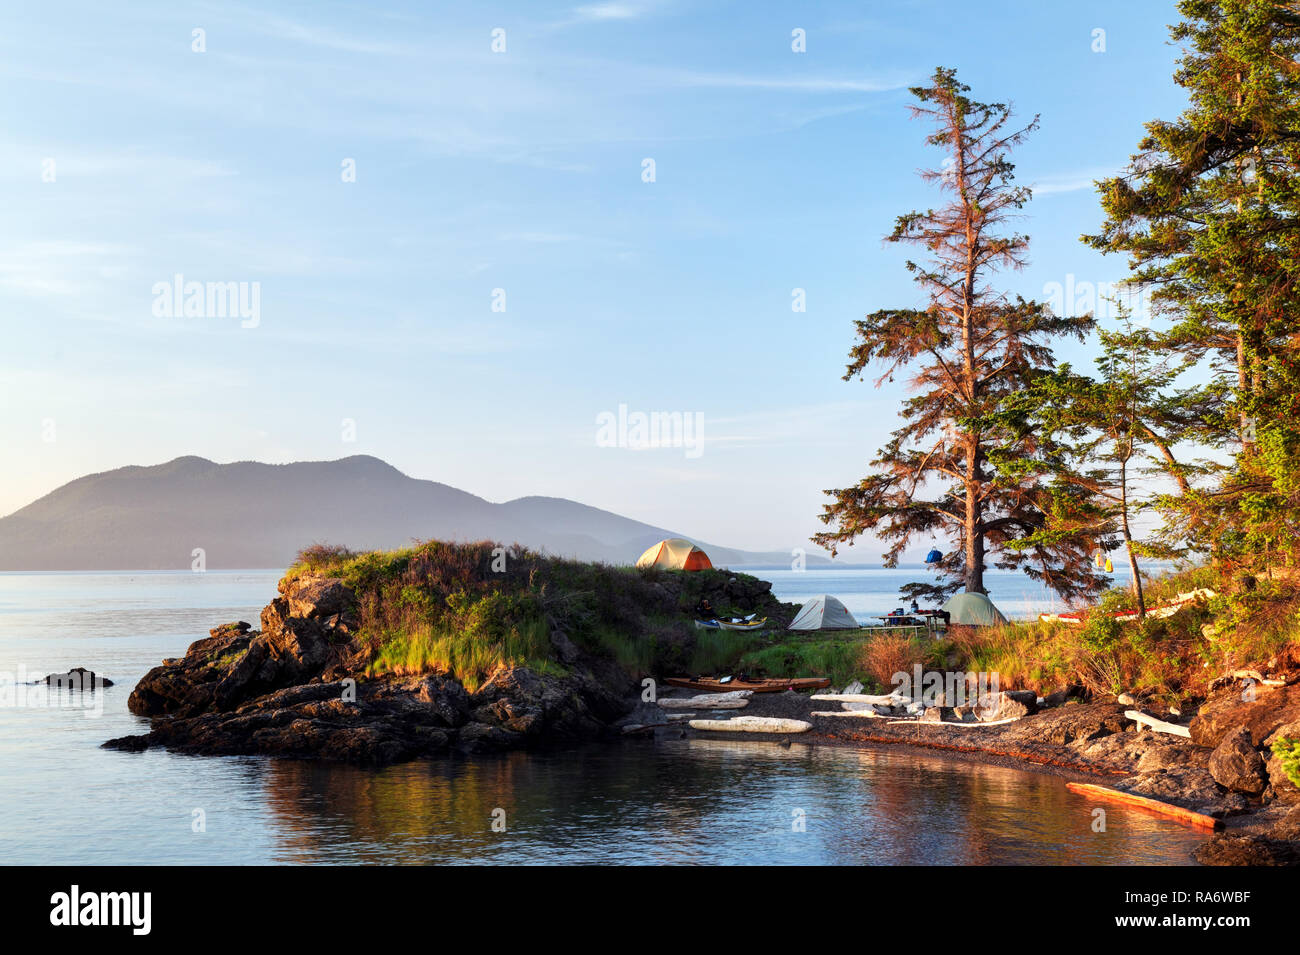 Sea kayakers camp on Doe Island, San Juan Islands, Washington State, USA Stock Photo